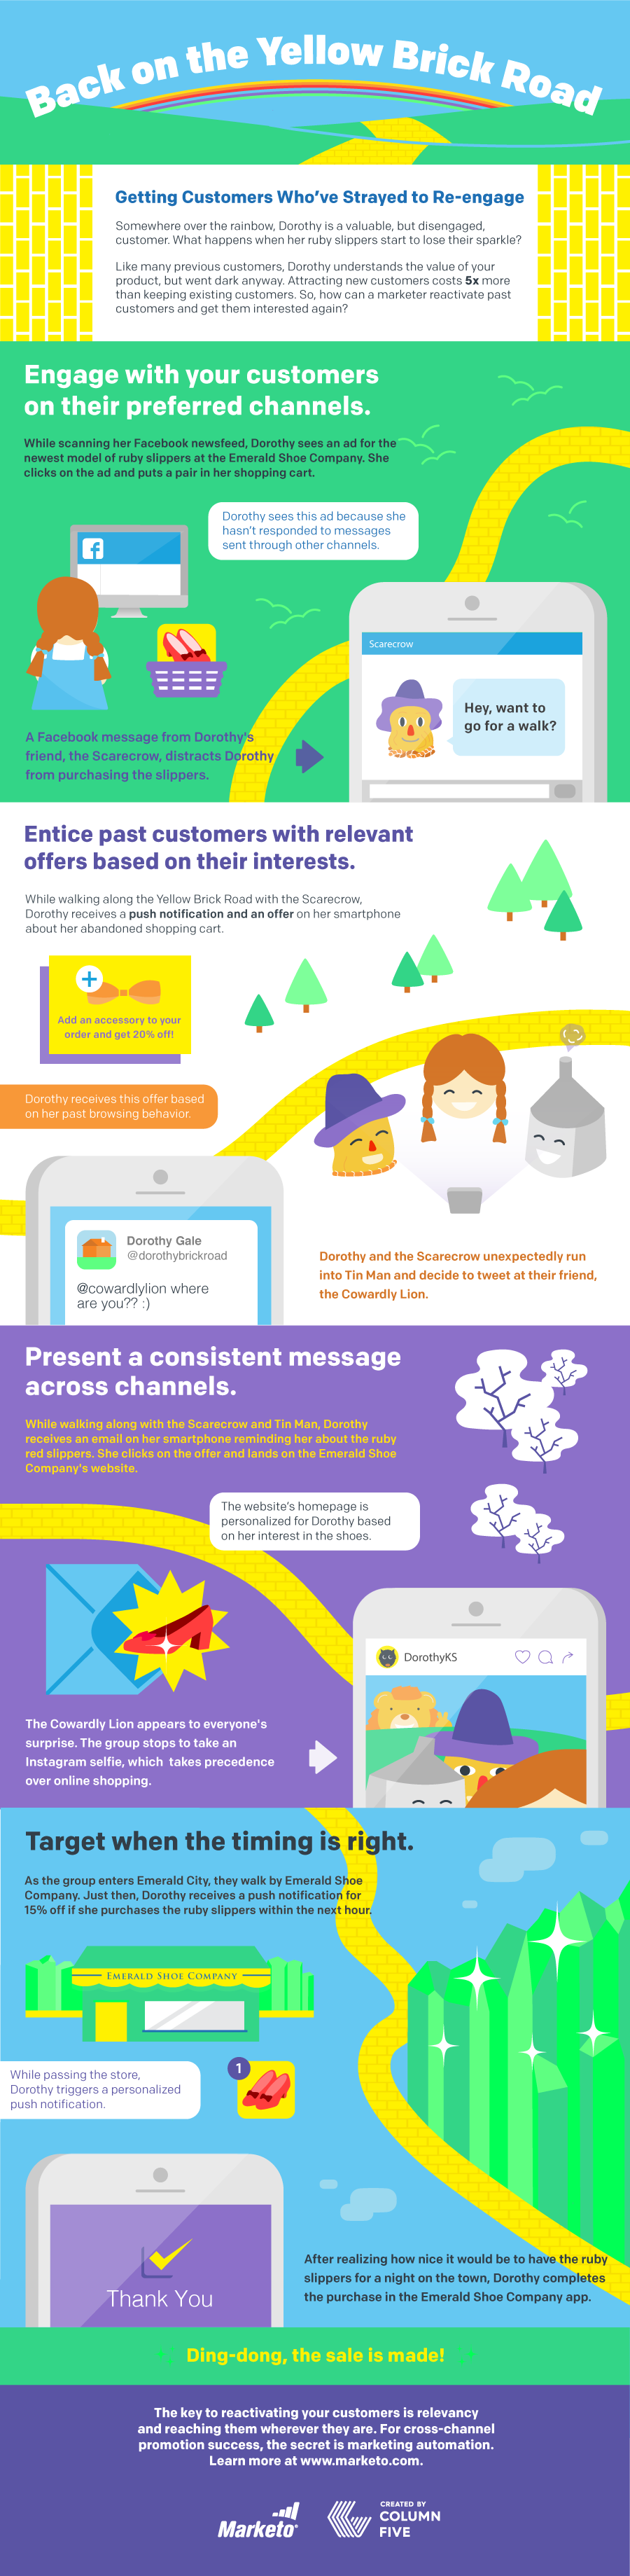 [Infographic] Back On The Yellow Brick Road: Getting Customers Who've Strayed To Re-engage